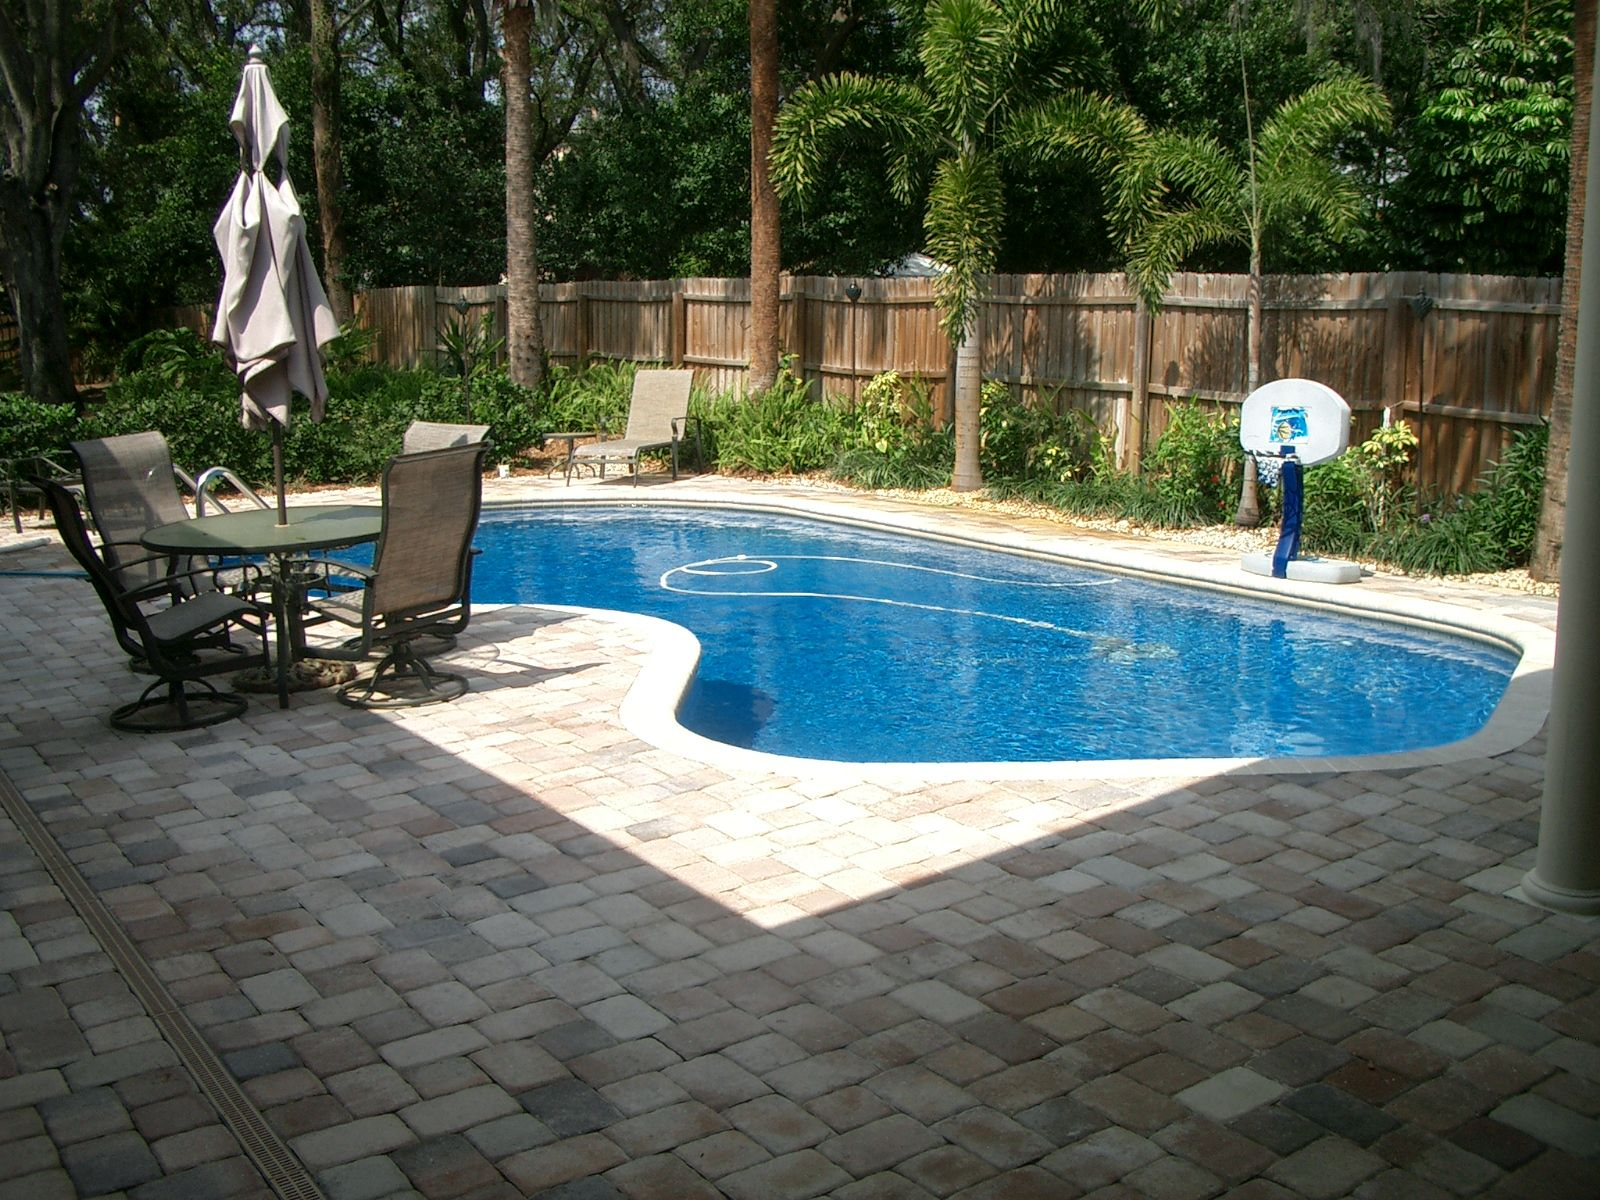 small inground pools for small yards backyard pool designs 1600x1200px wallpapers backyard pools